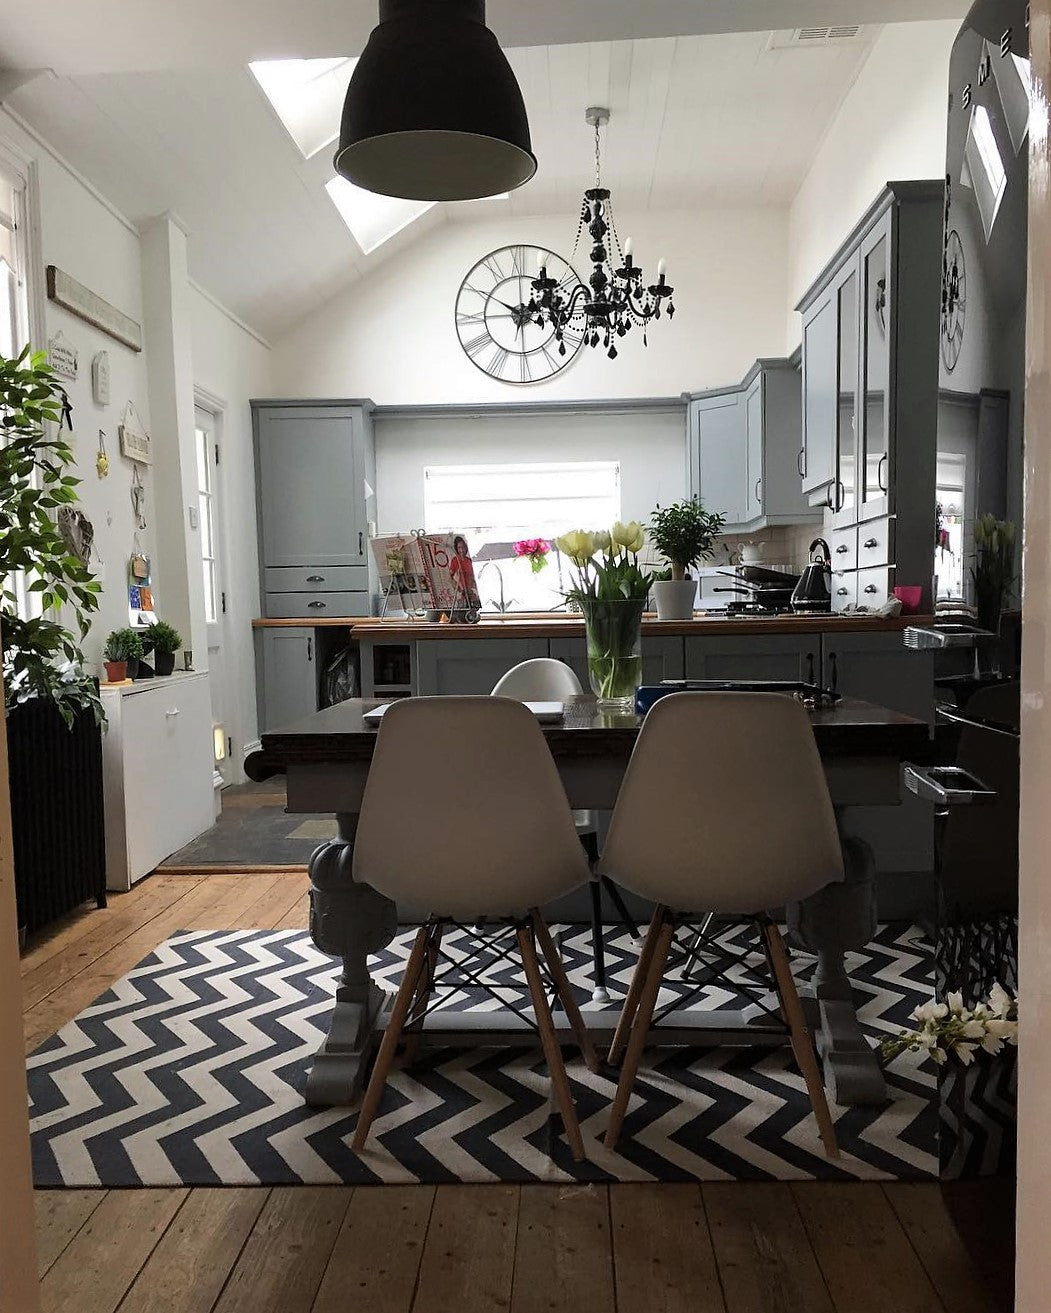 Open plan kitchen diner with patterned urg and pendant light - on www.lovetohome.co.uk - photo credit with permission from Claire via @houseofharwoodandrose on Instagram